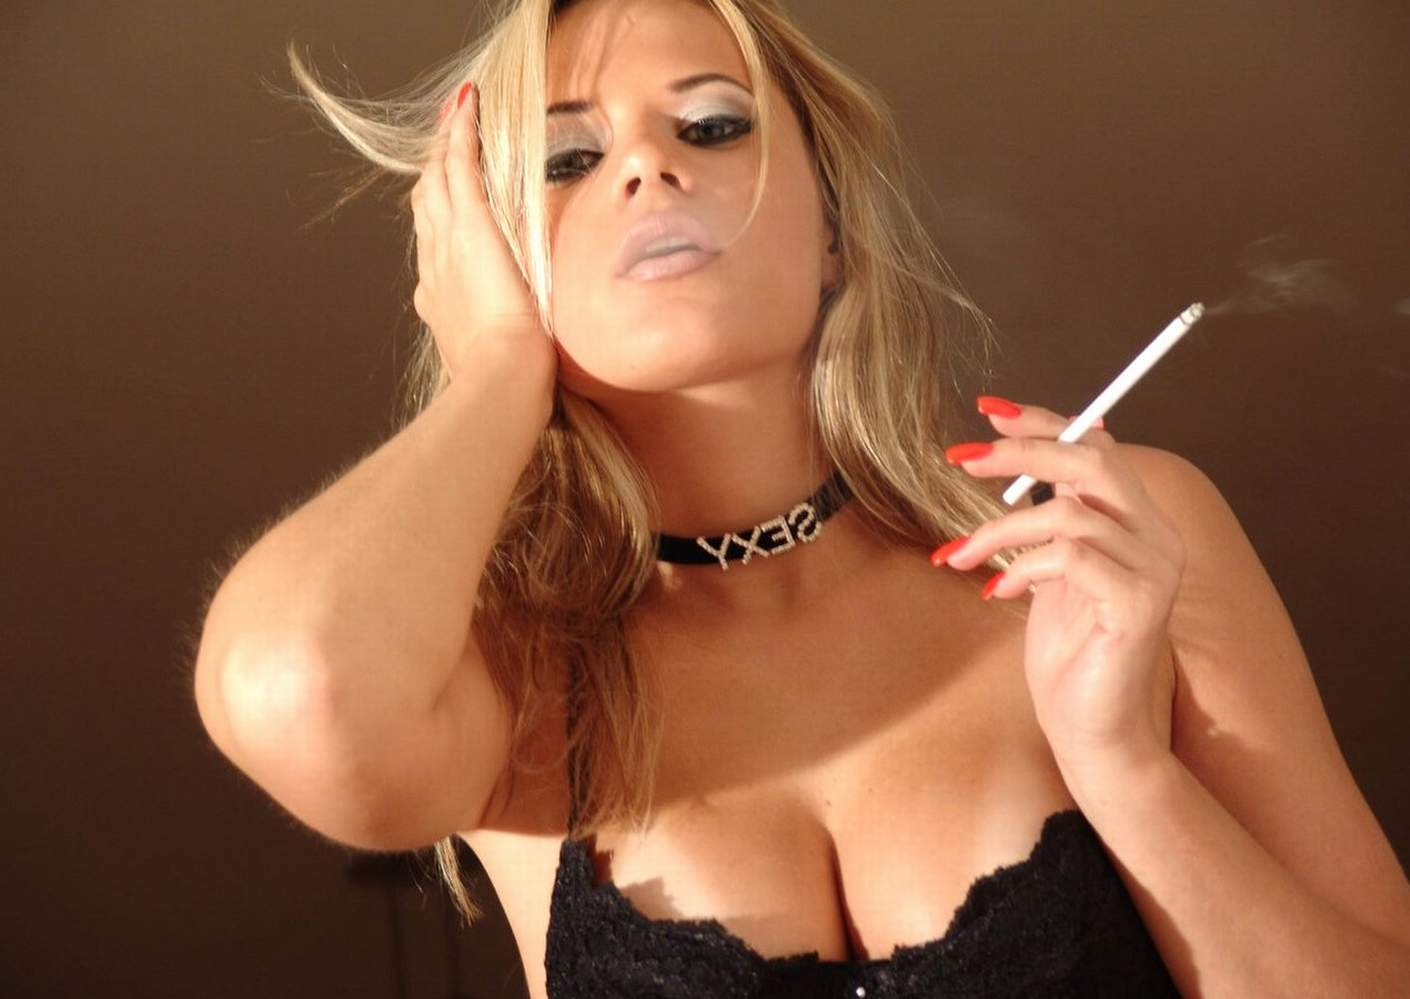 Smoking sex free video clips